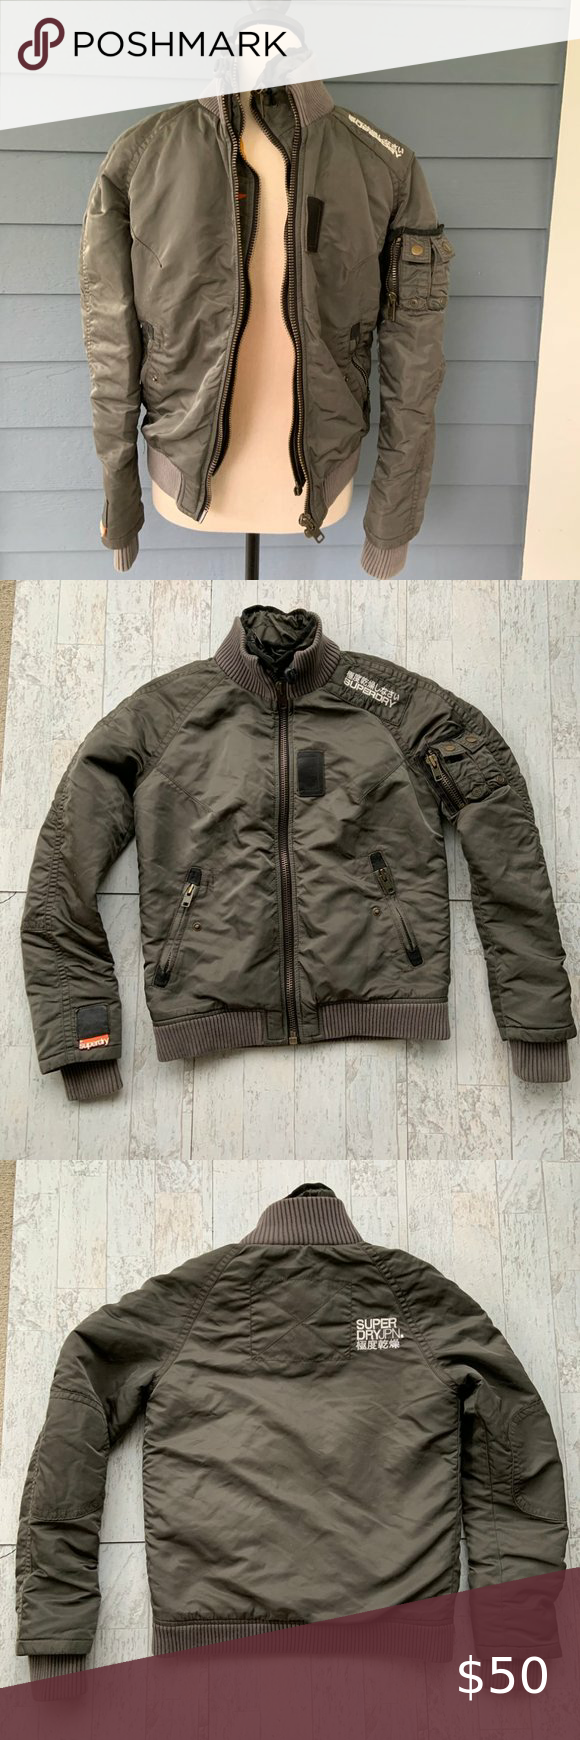 Superdry Military Bomber Jacket Coat Quilted S Military Bomber Jacket Bomber Jacket Coats Jackets [ 1740 x 580 Pixel ]